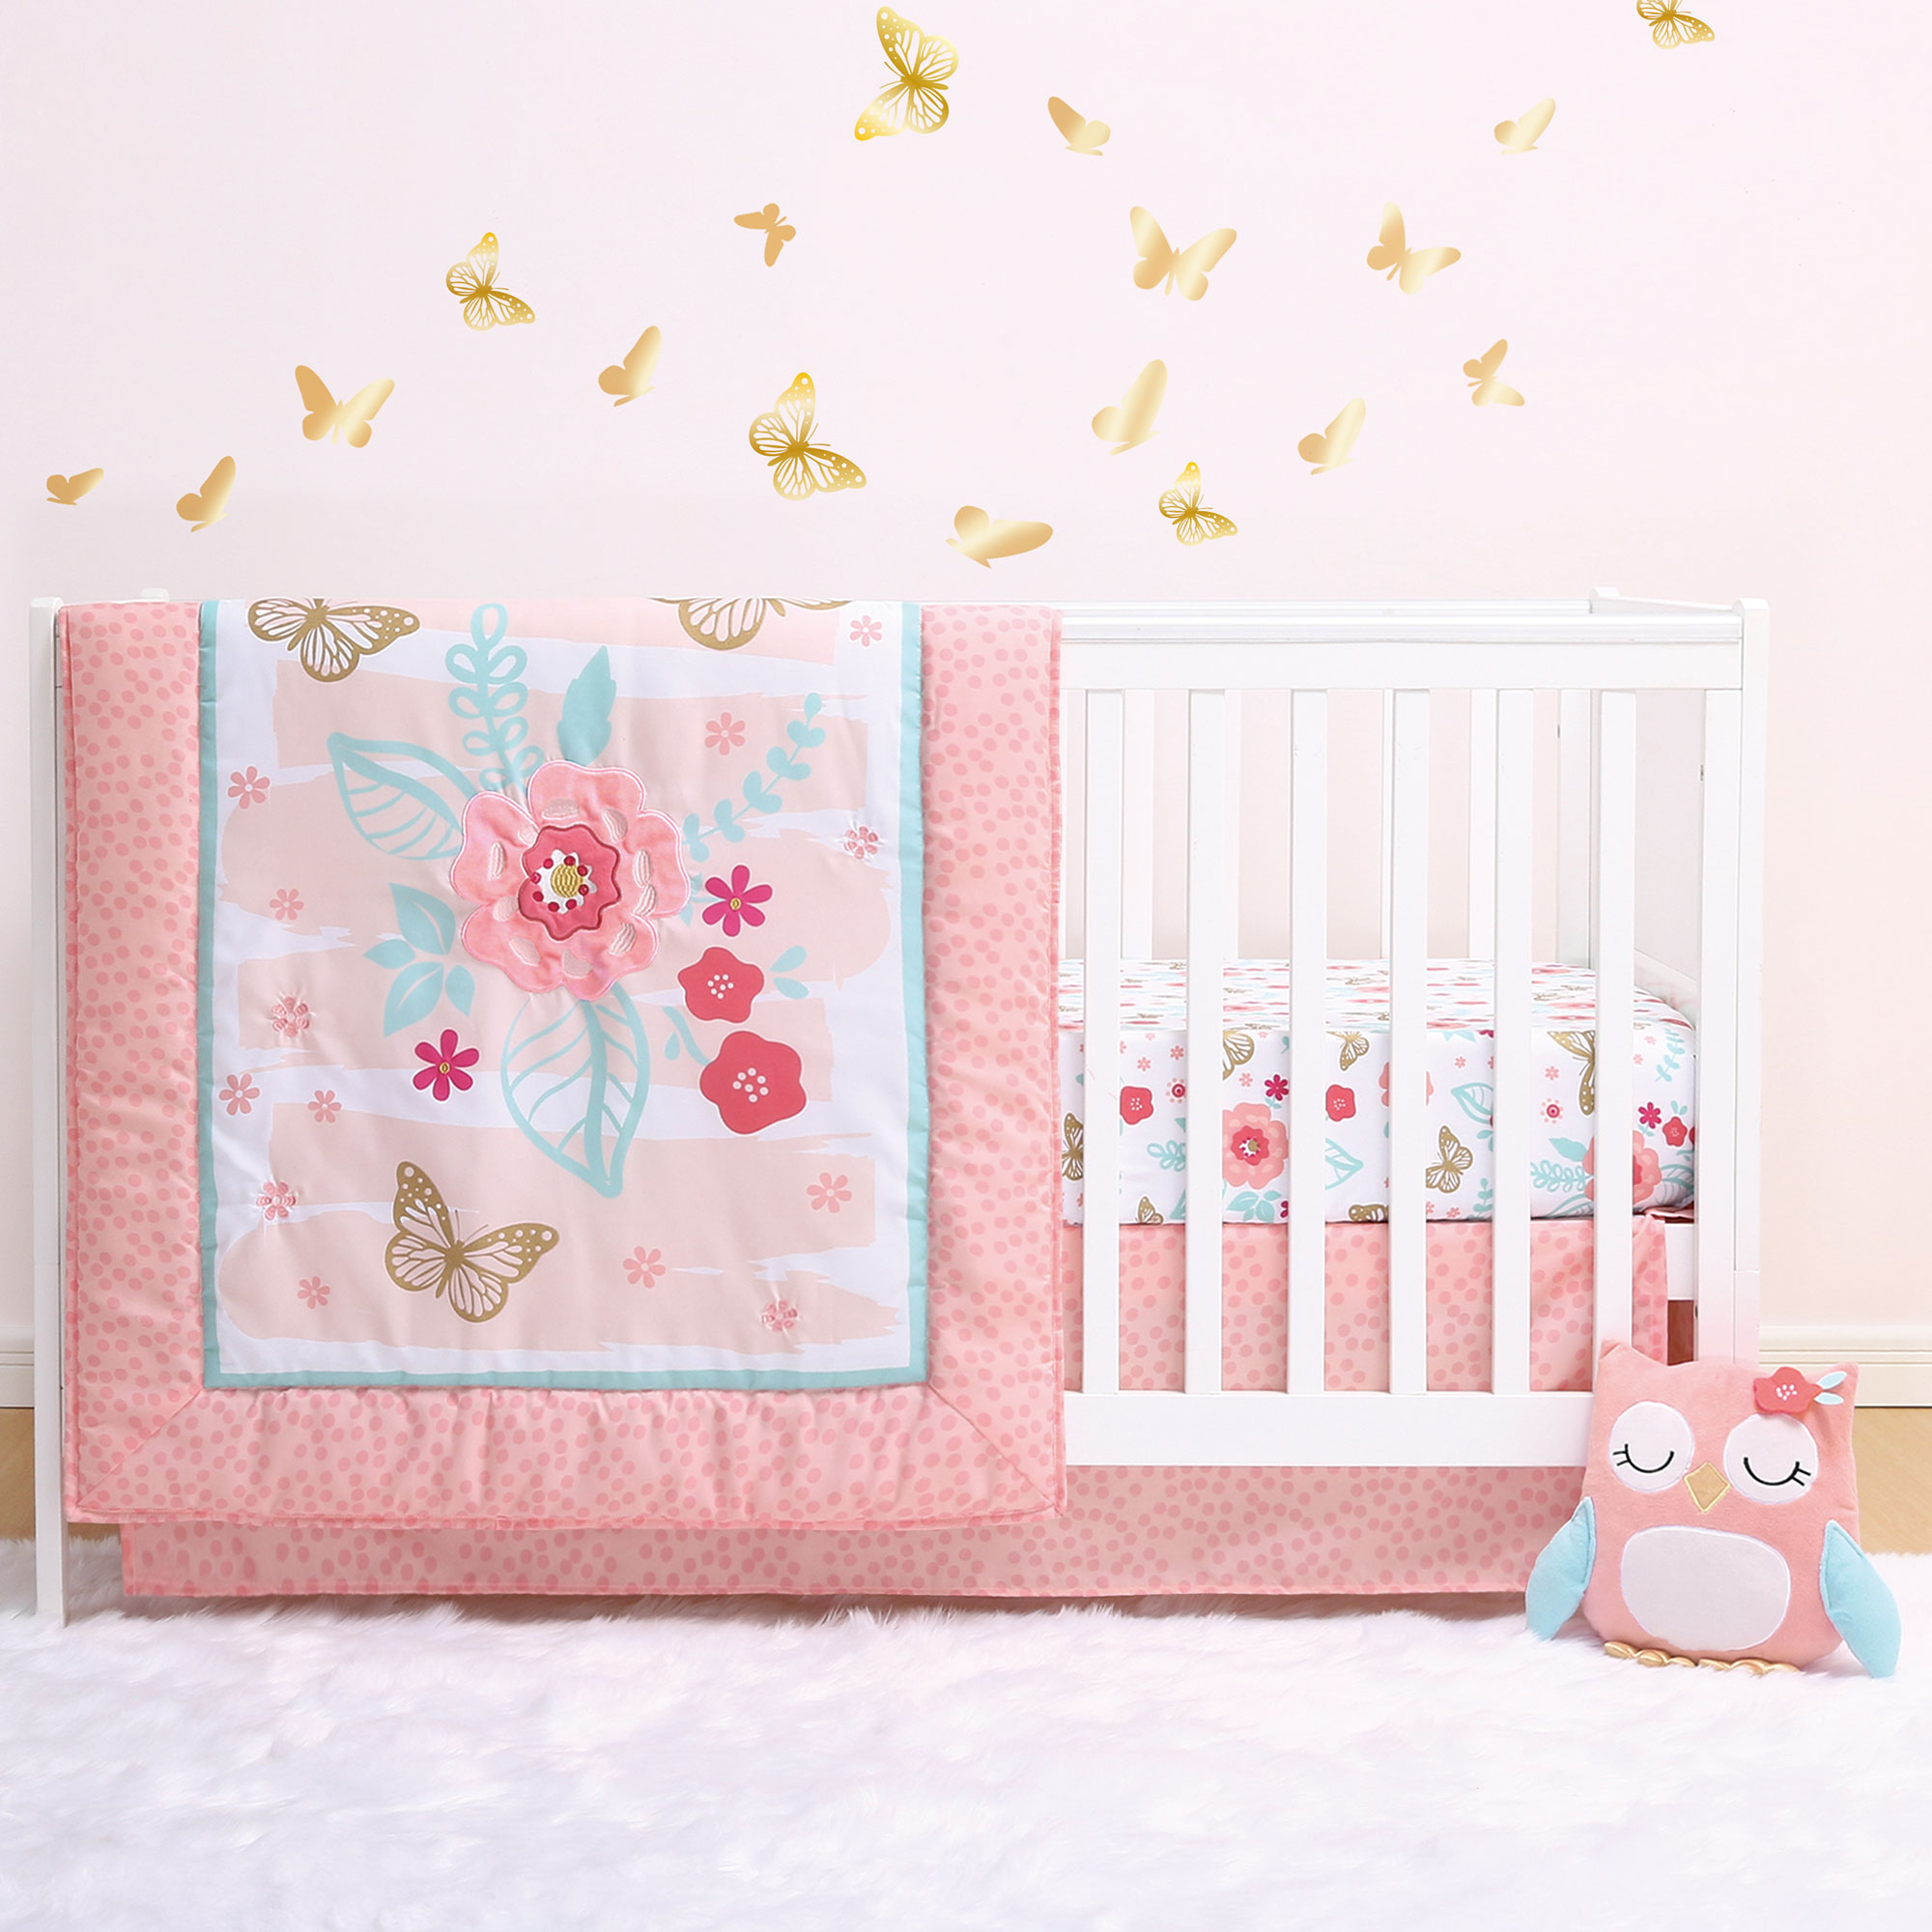 Aflutter 4-Piece Butterfly and Flowers Floral Owl Plush Baby Crib Bedding Set by Little Haven